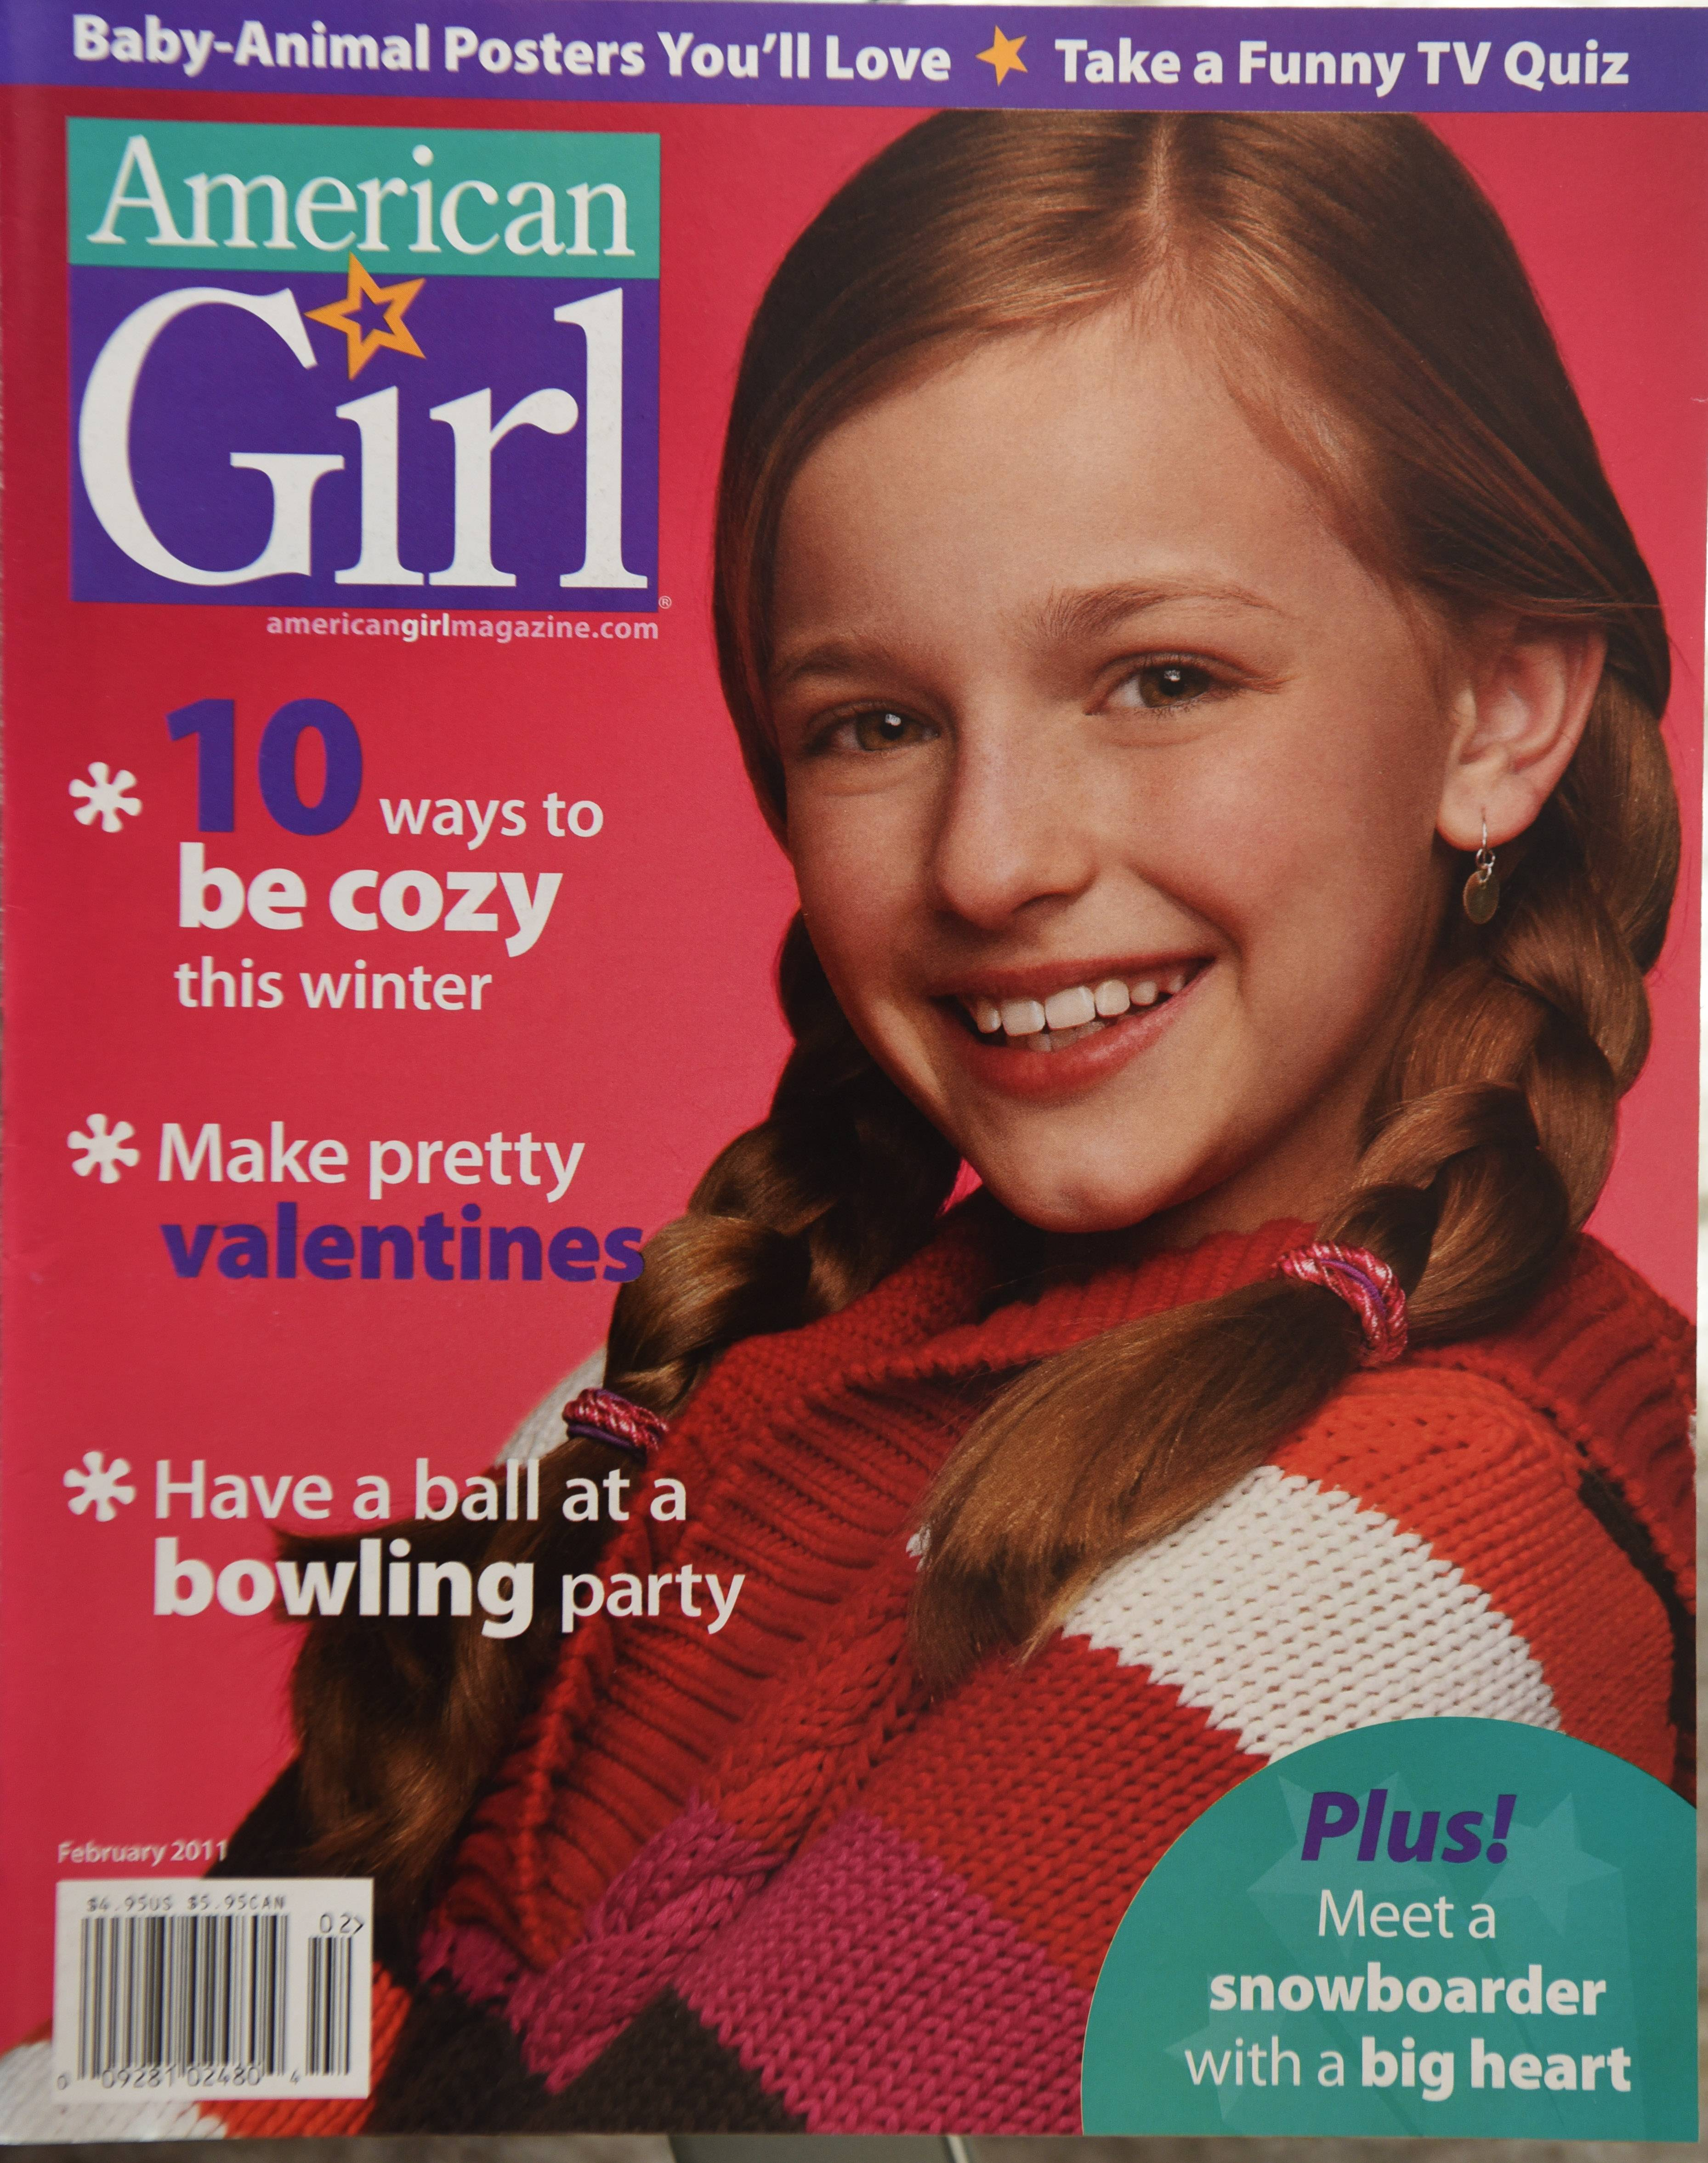 Making the cover of American Girl magazine was a grade-school highlight for Jacqueline Scislowski of Arlington Heights.